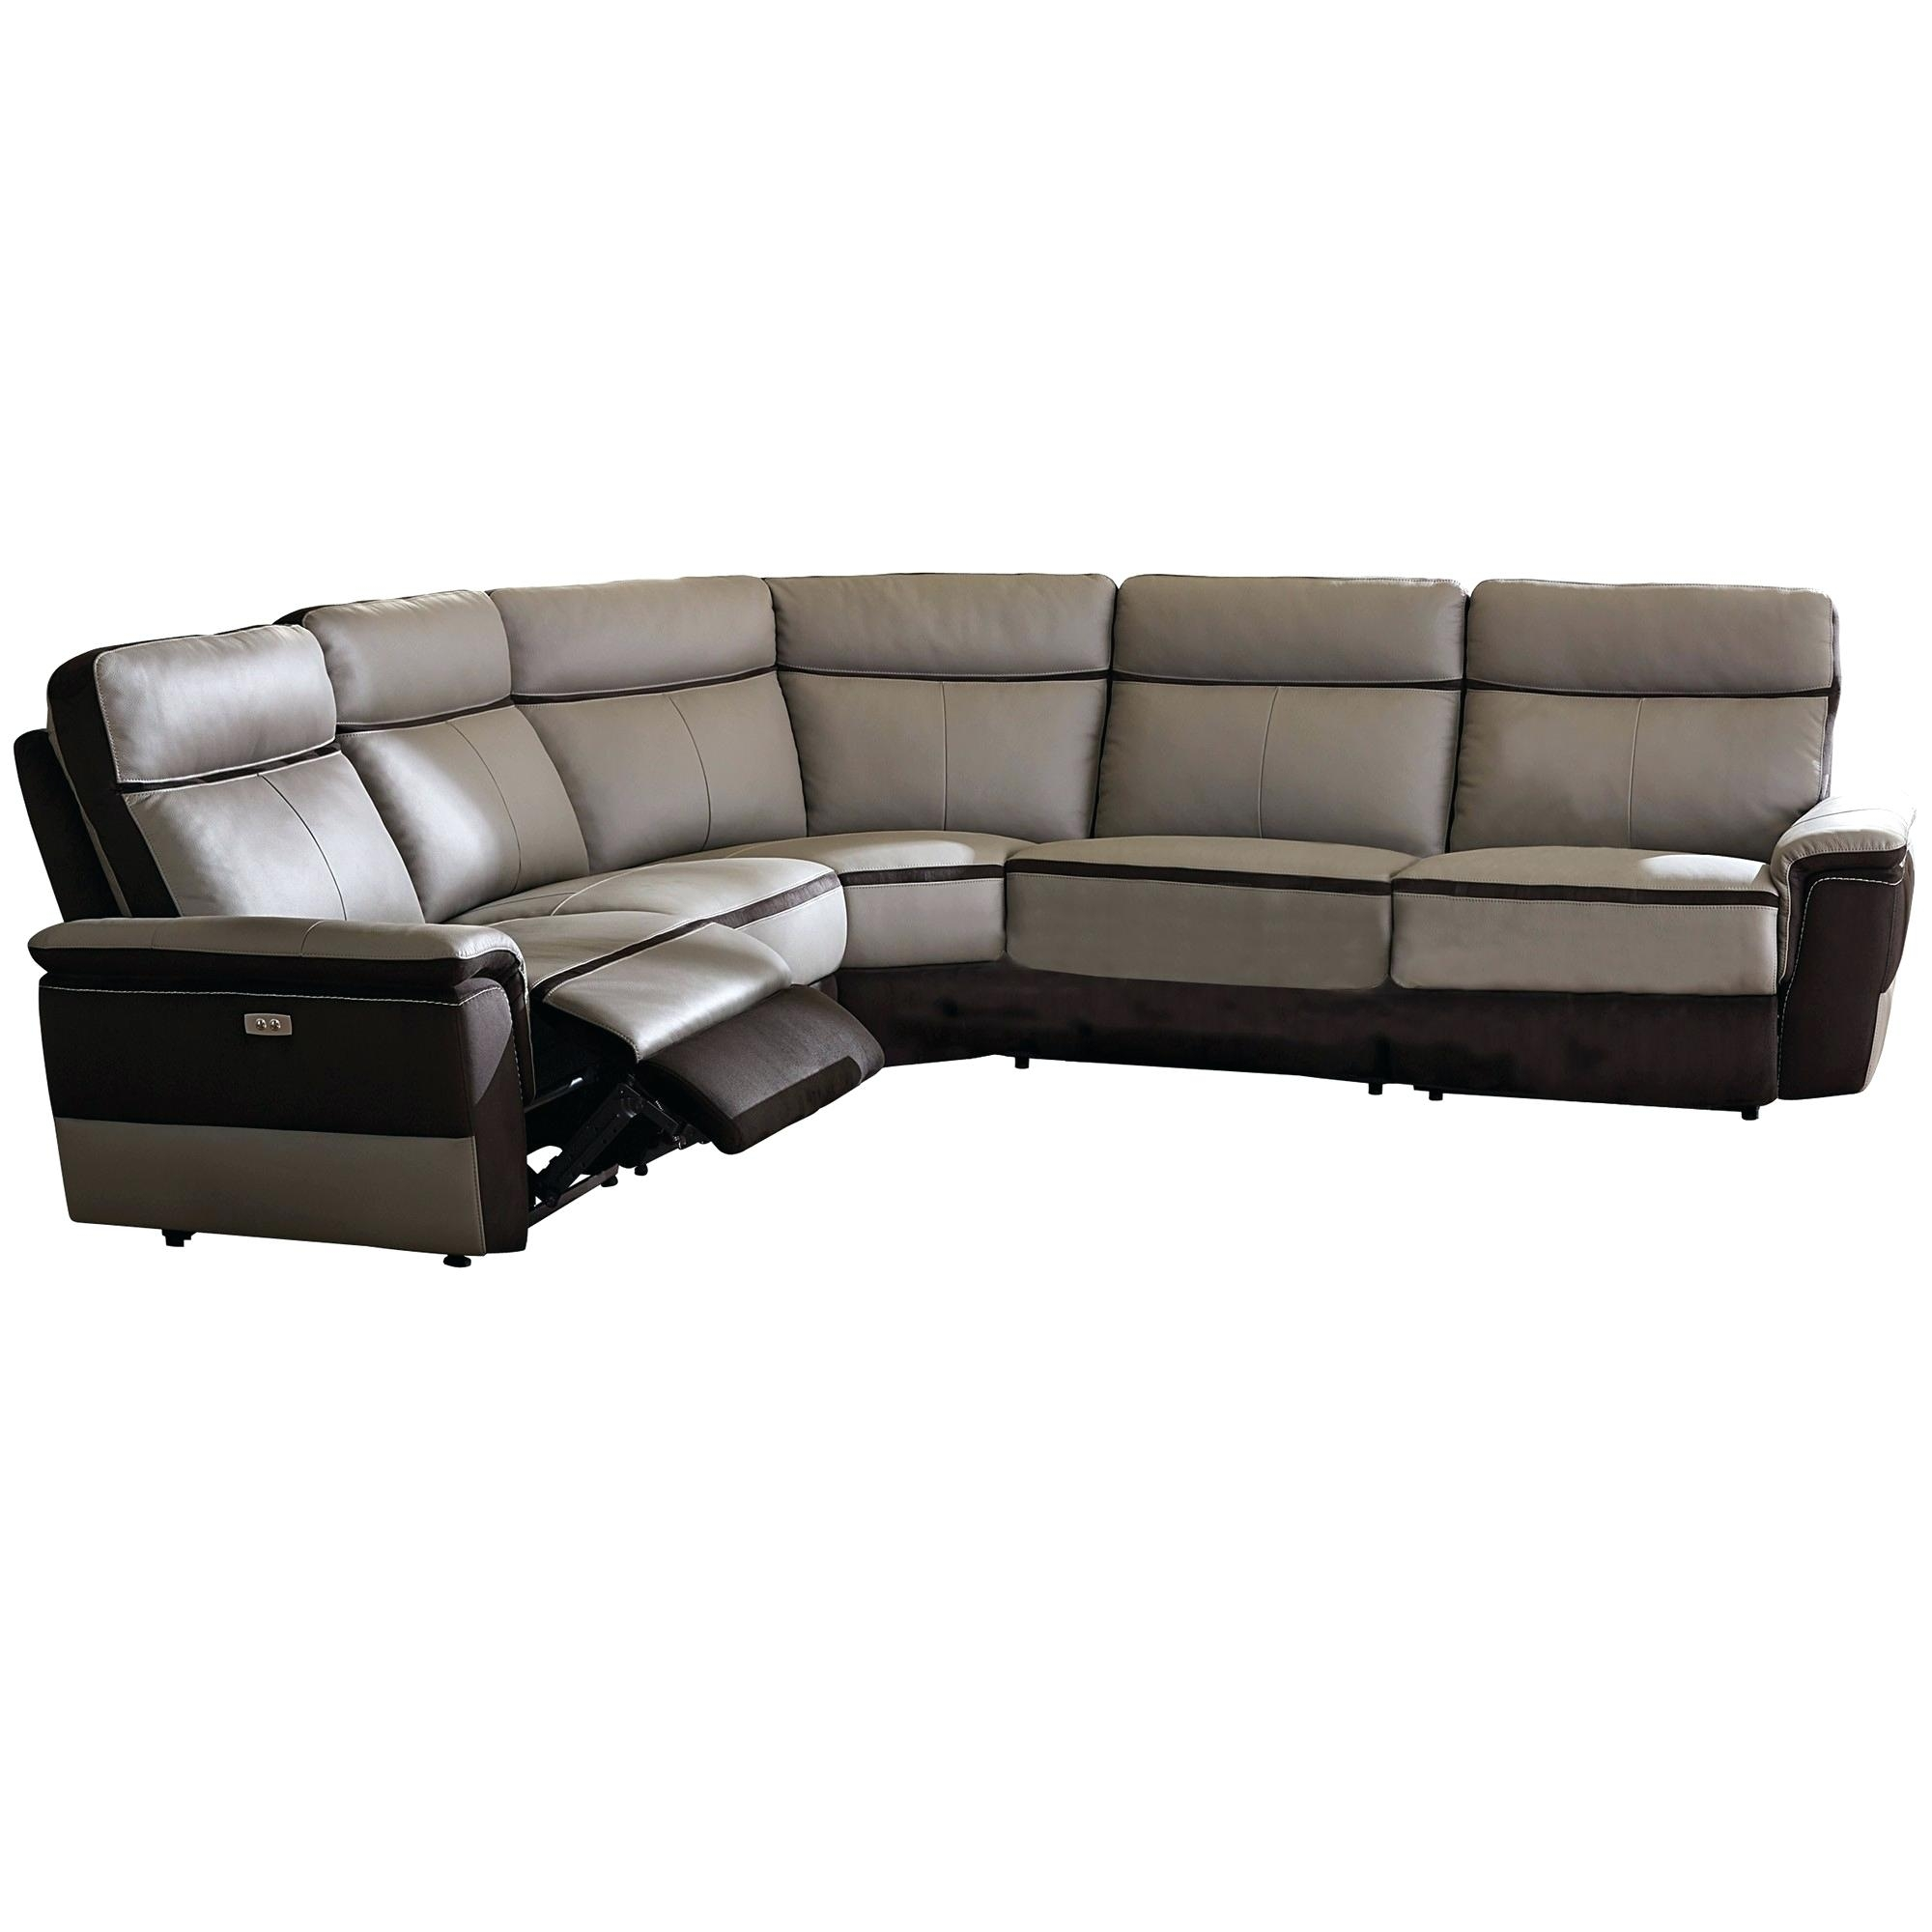 Craigslist Sofa Bed Vancouver Sectional For Sale Nj Kandpinfo Sofa  Bed Craigslist L 0Fb9472Dec447Ef5 Within Vancouver Sectional Sofas (Image 4 of 10)